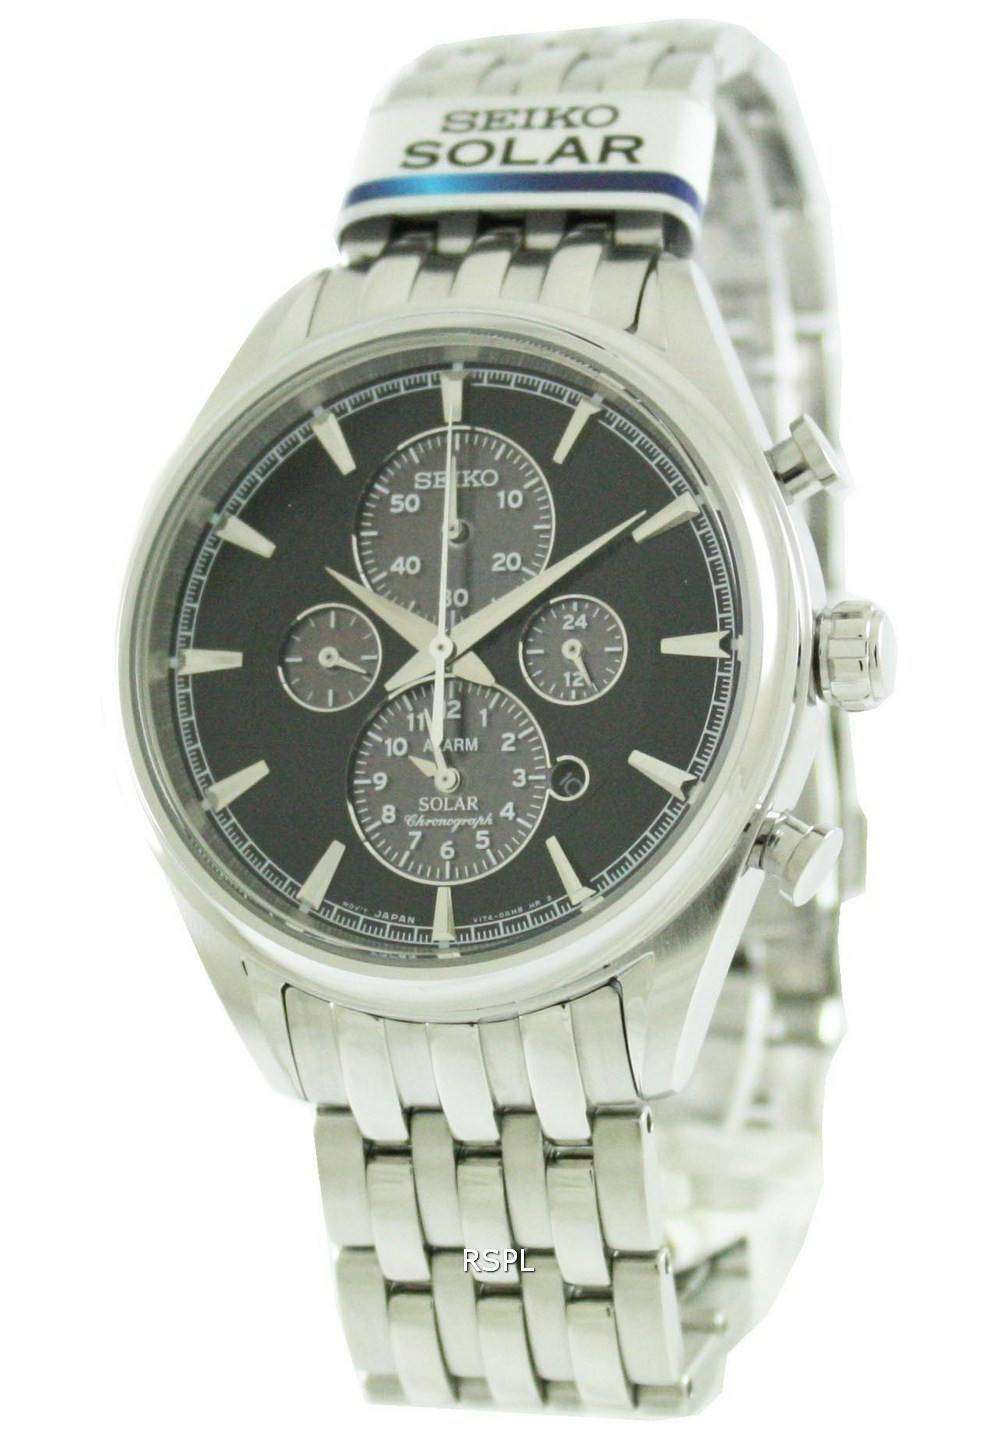 seiko solar chronograph ssc211p1 ssc211p ssc211 mens watch. Black Bedroom Furniture Sets. Home Design Ideas